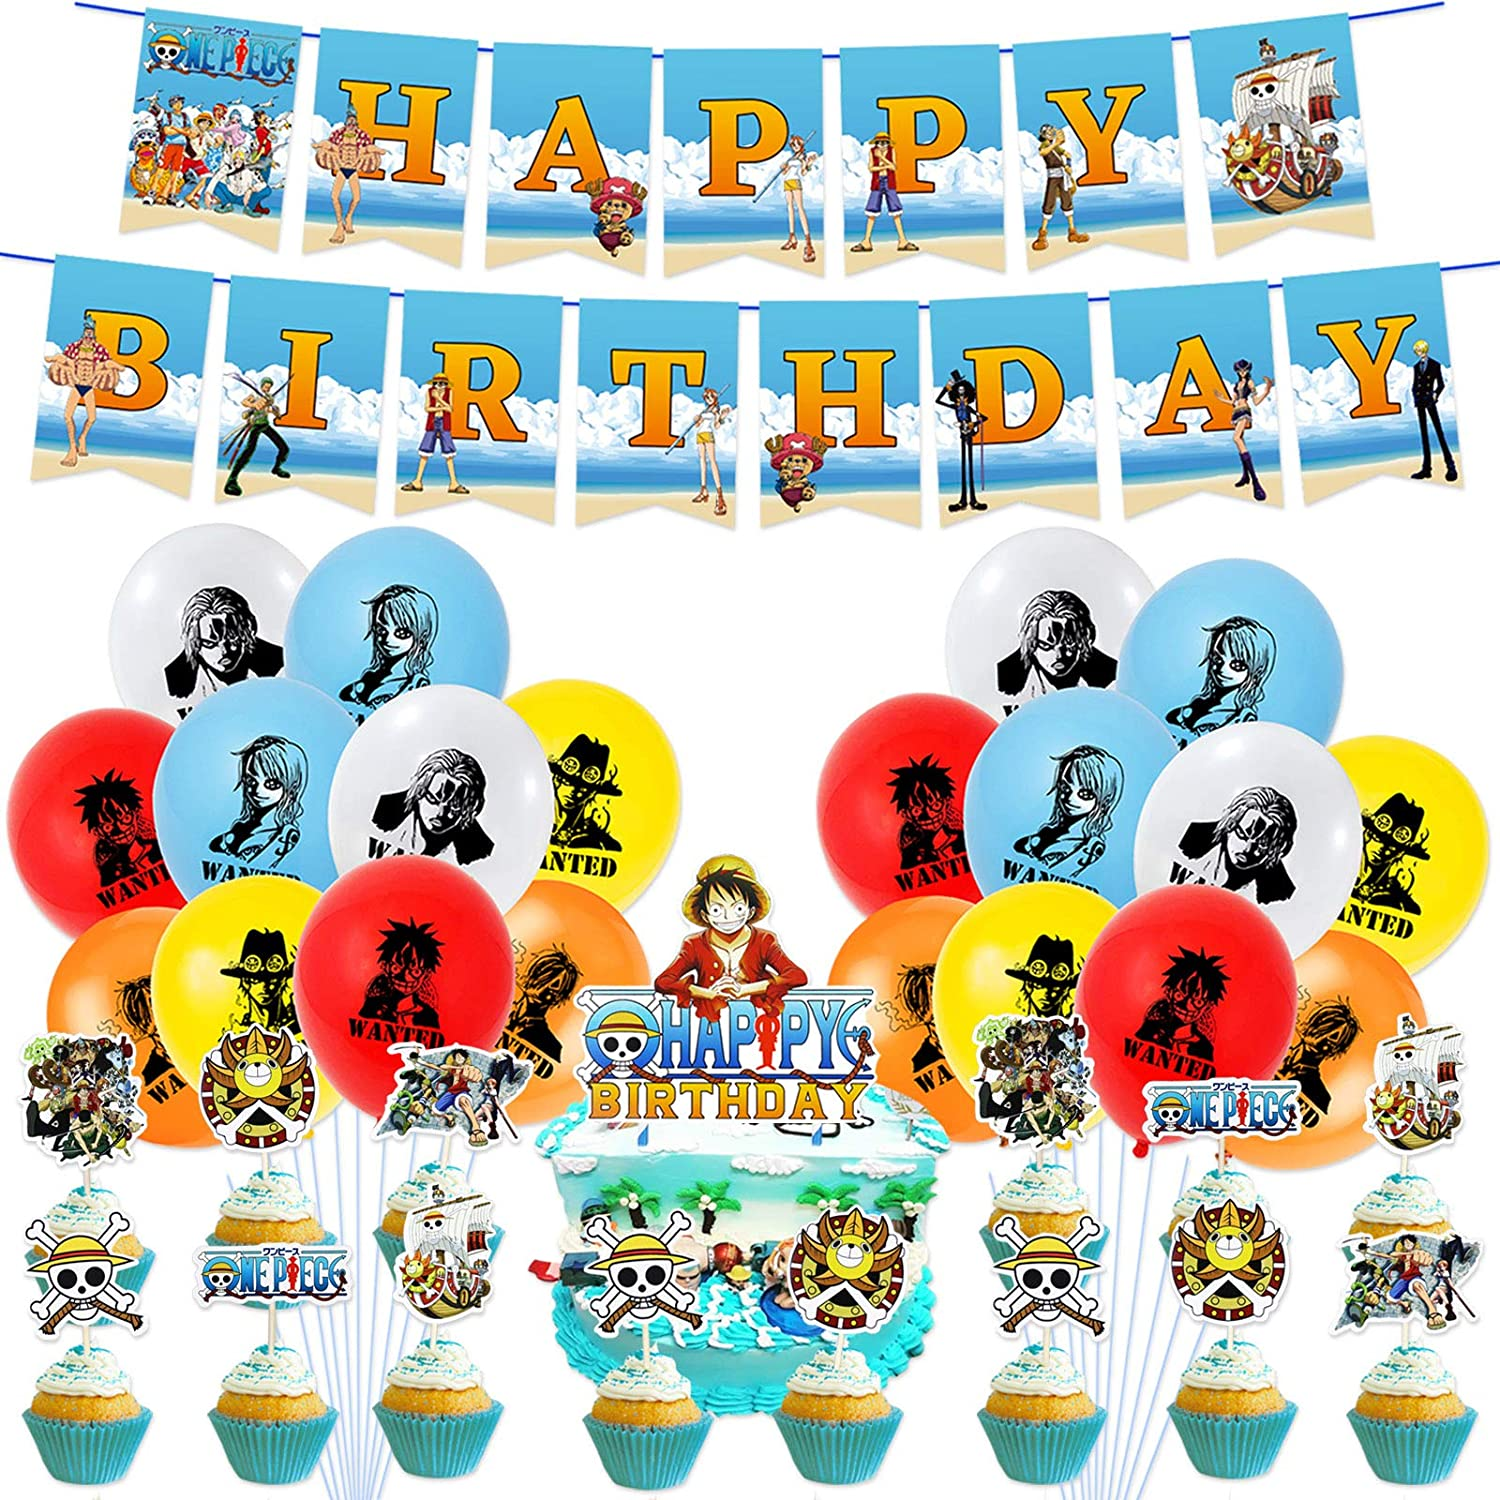 46pcs One Piece Birthday Party Decorations-Balloon Banner Cake Toppers Set Anime Party Supplies for Kids and Boys